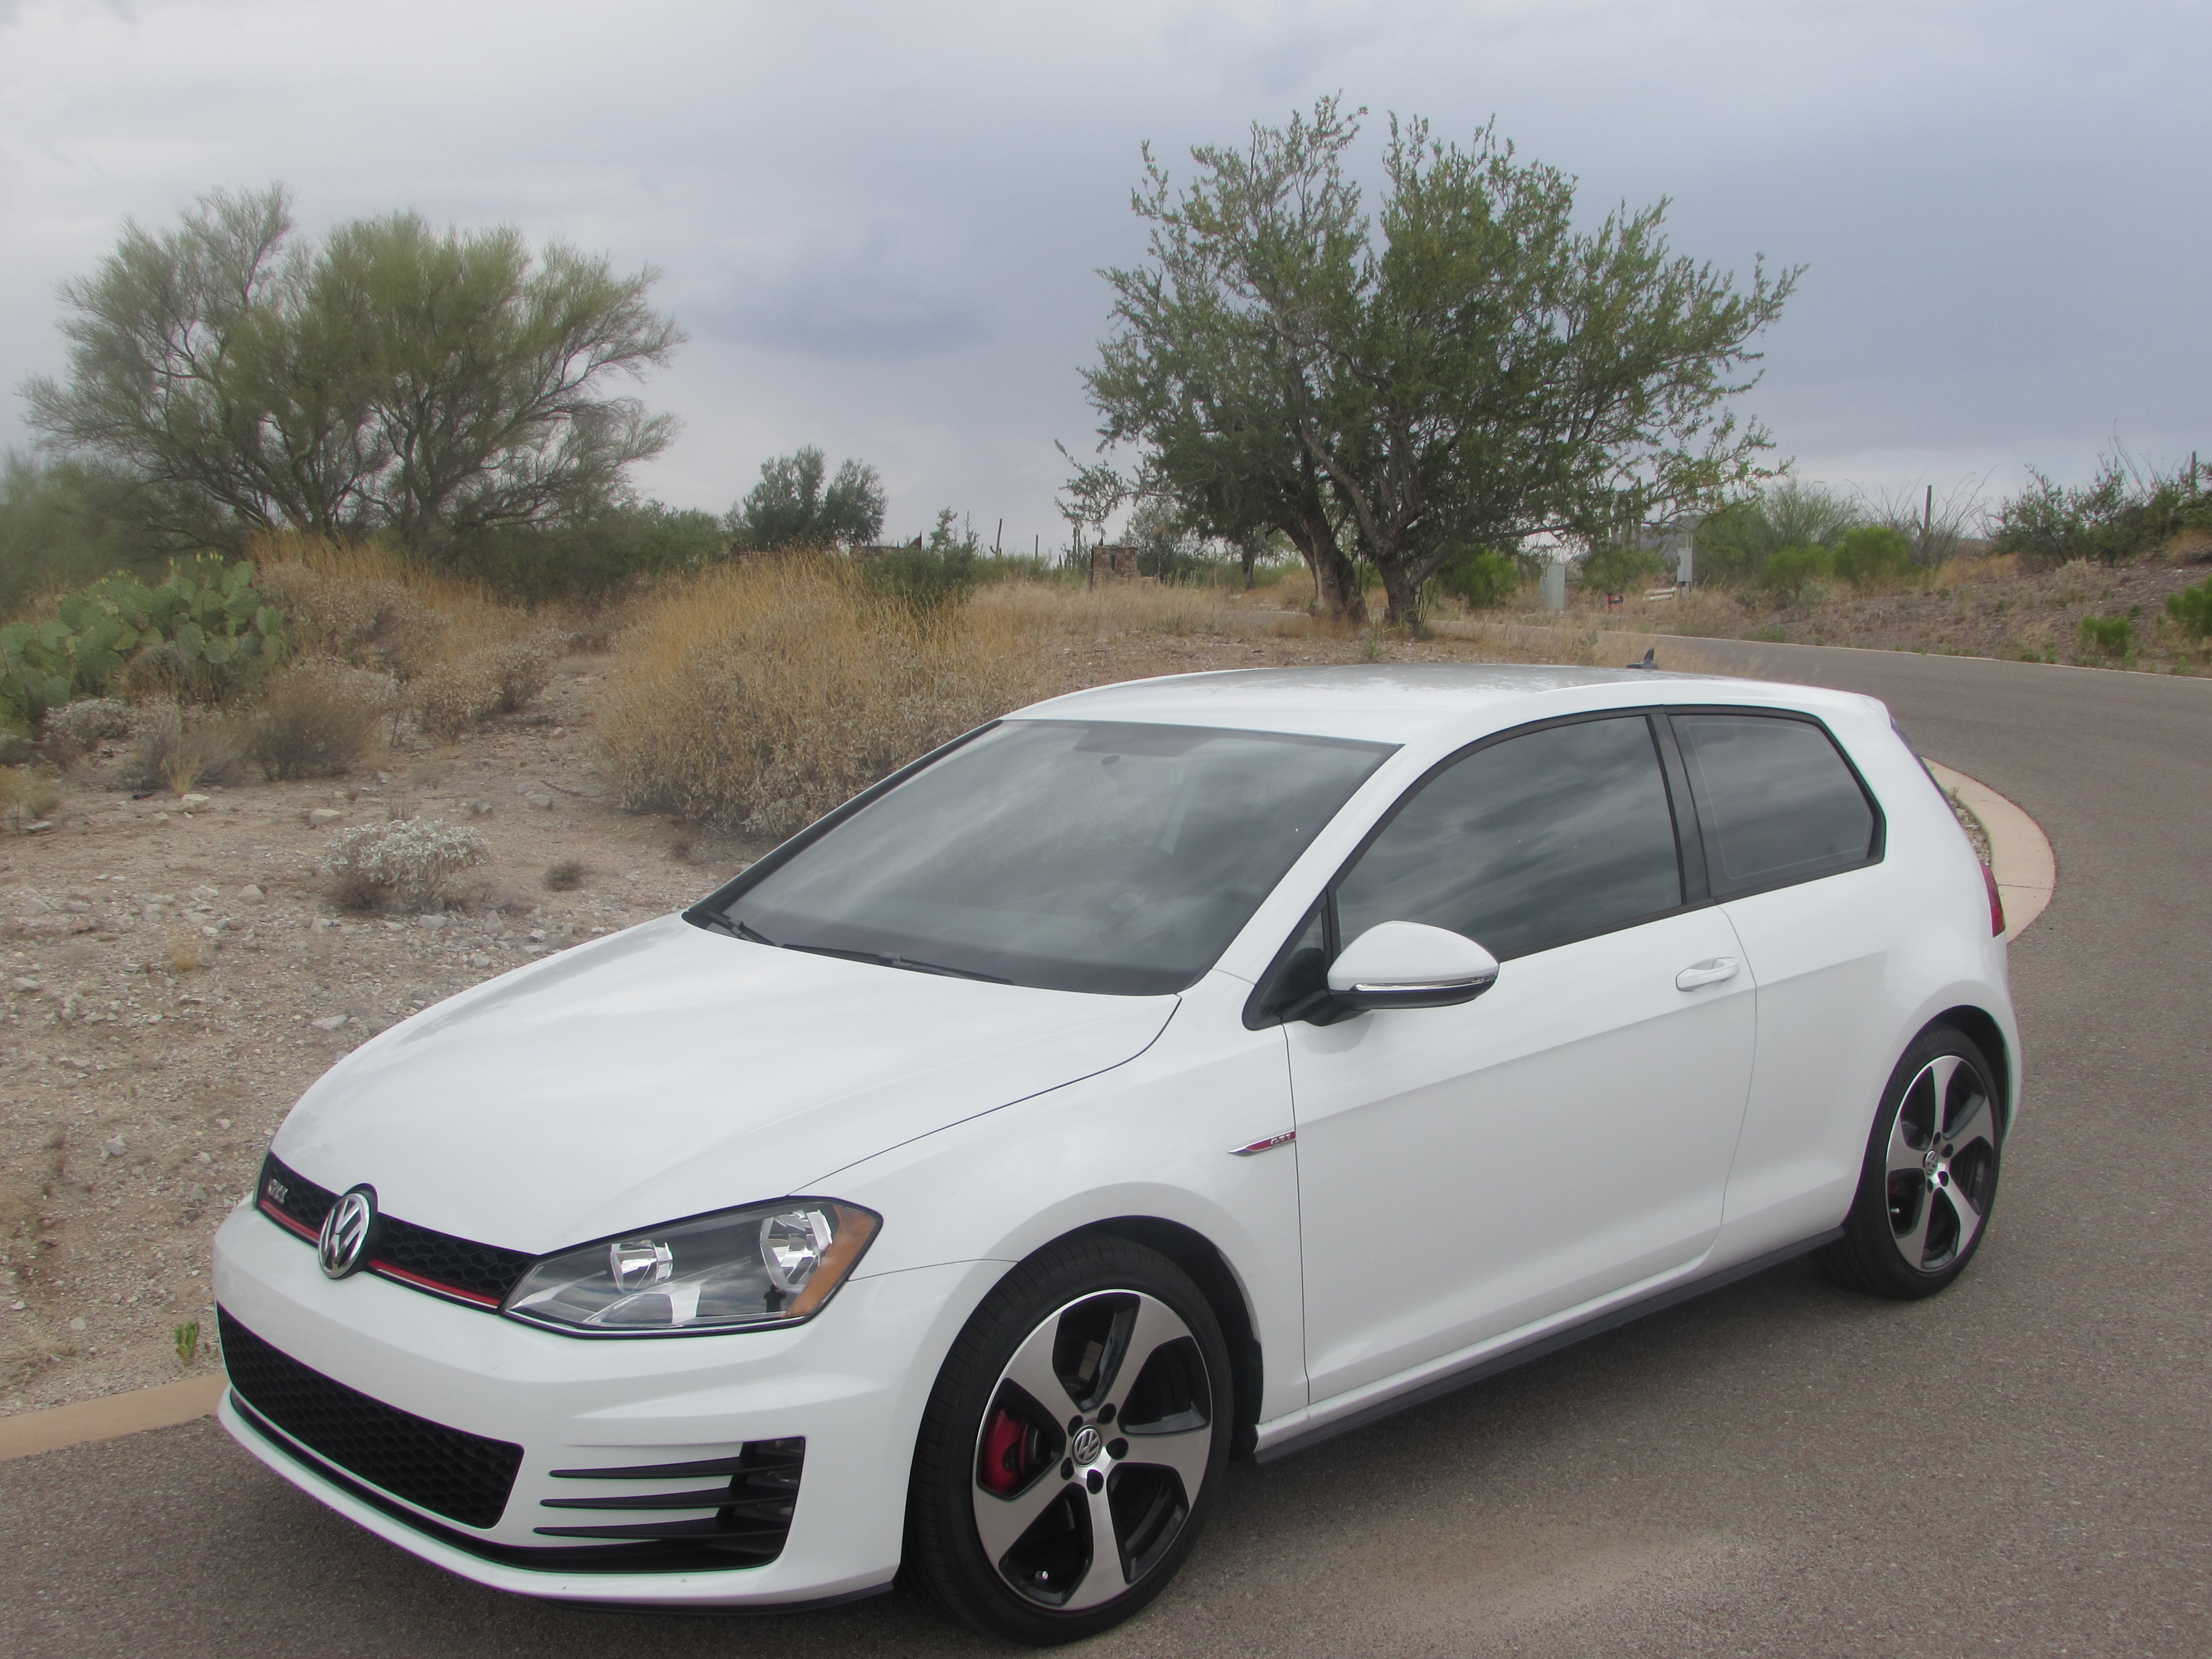 Steve White Vw >> 2015 Volkswagen GTI Long-Term Tester Update - The Truth About Cars